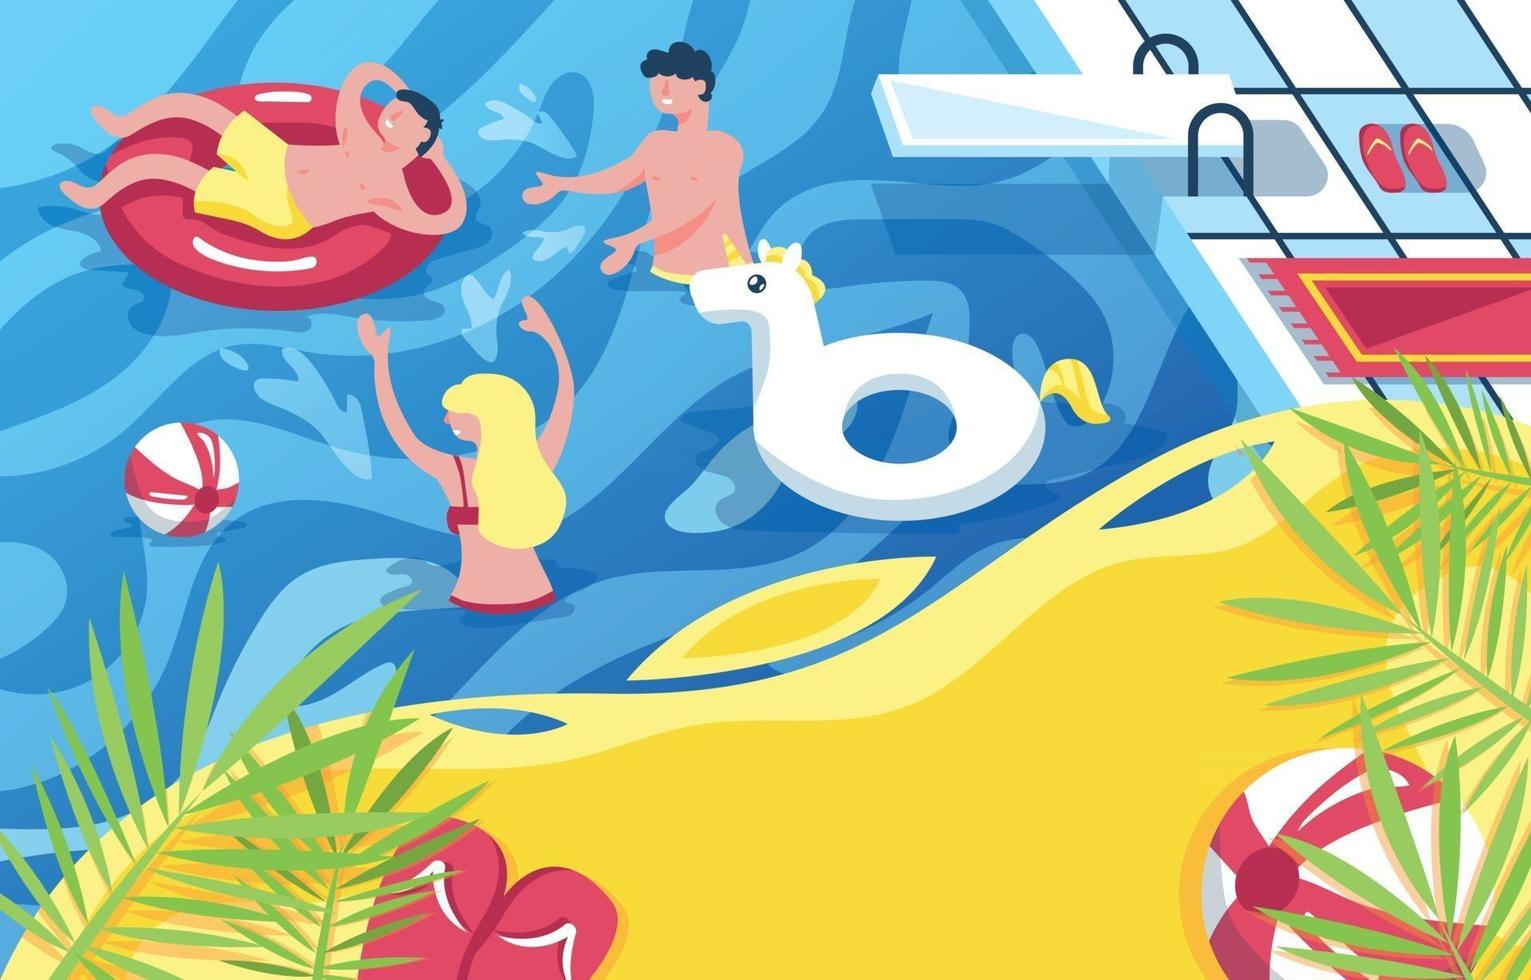 People Having Fun in the Pool Background vector